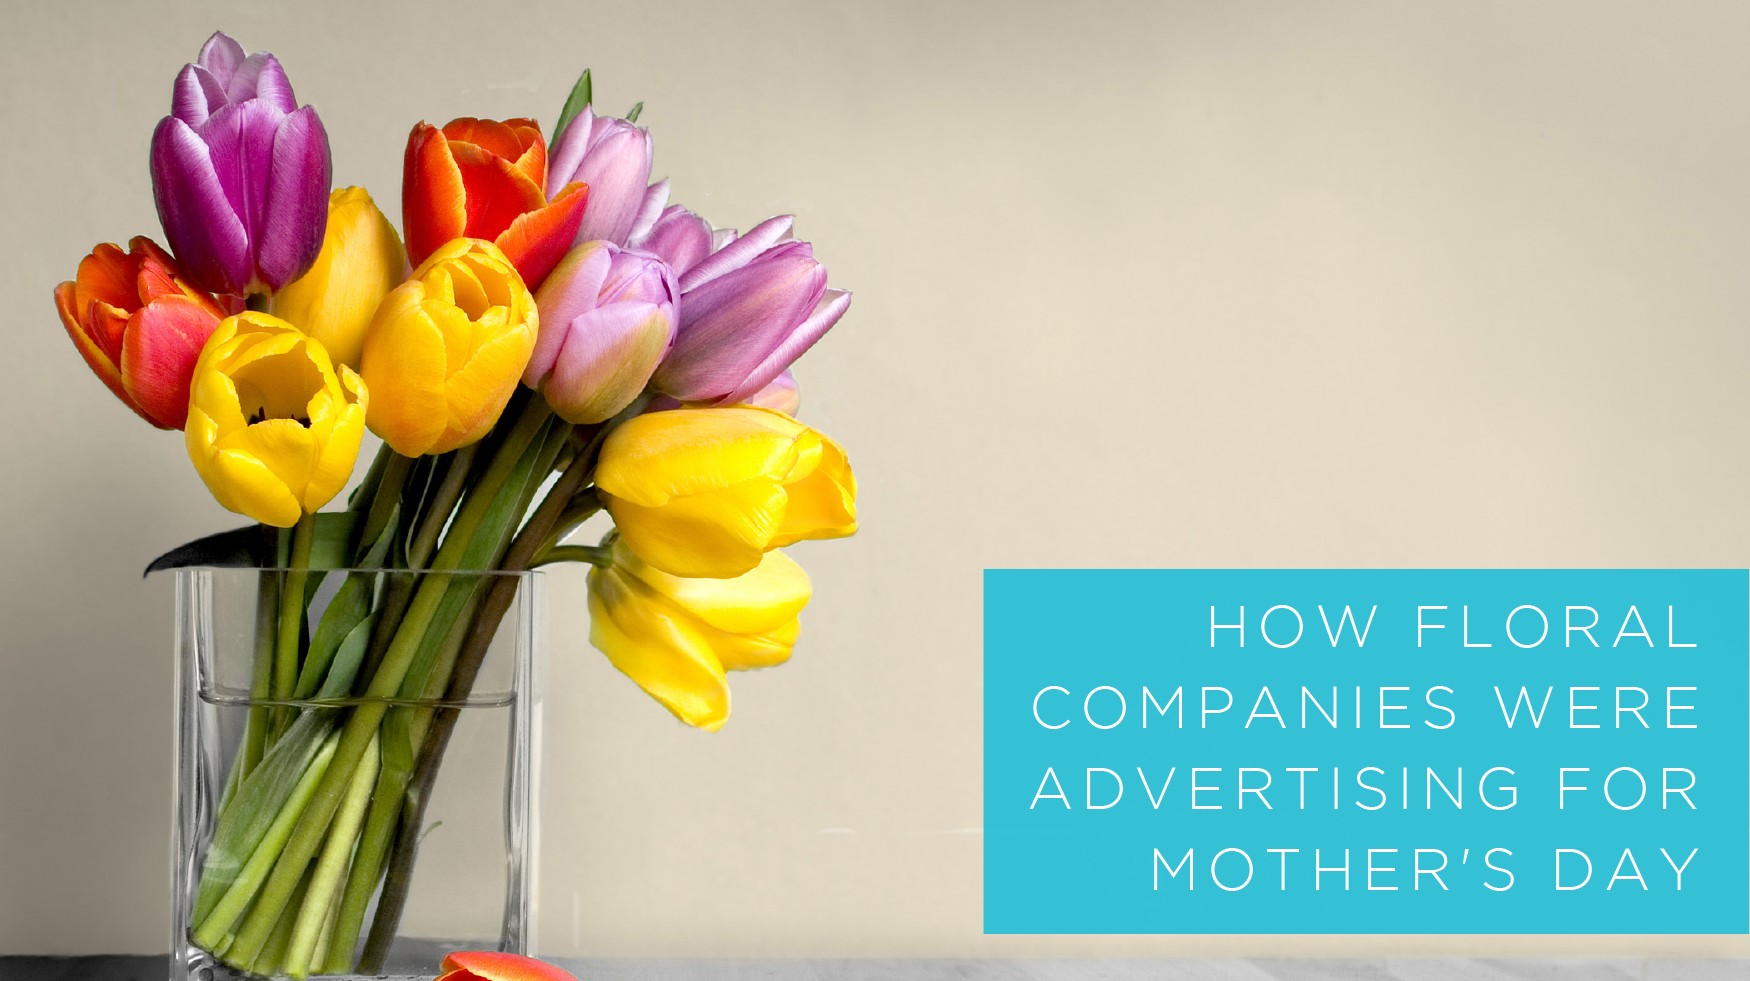 How Online Floral Retailers Were Advertising For Mother's Day - Featured Image